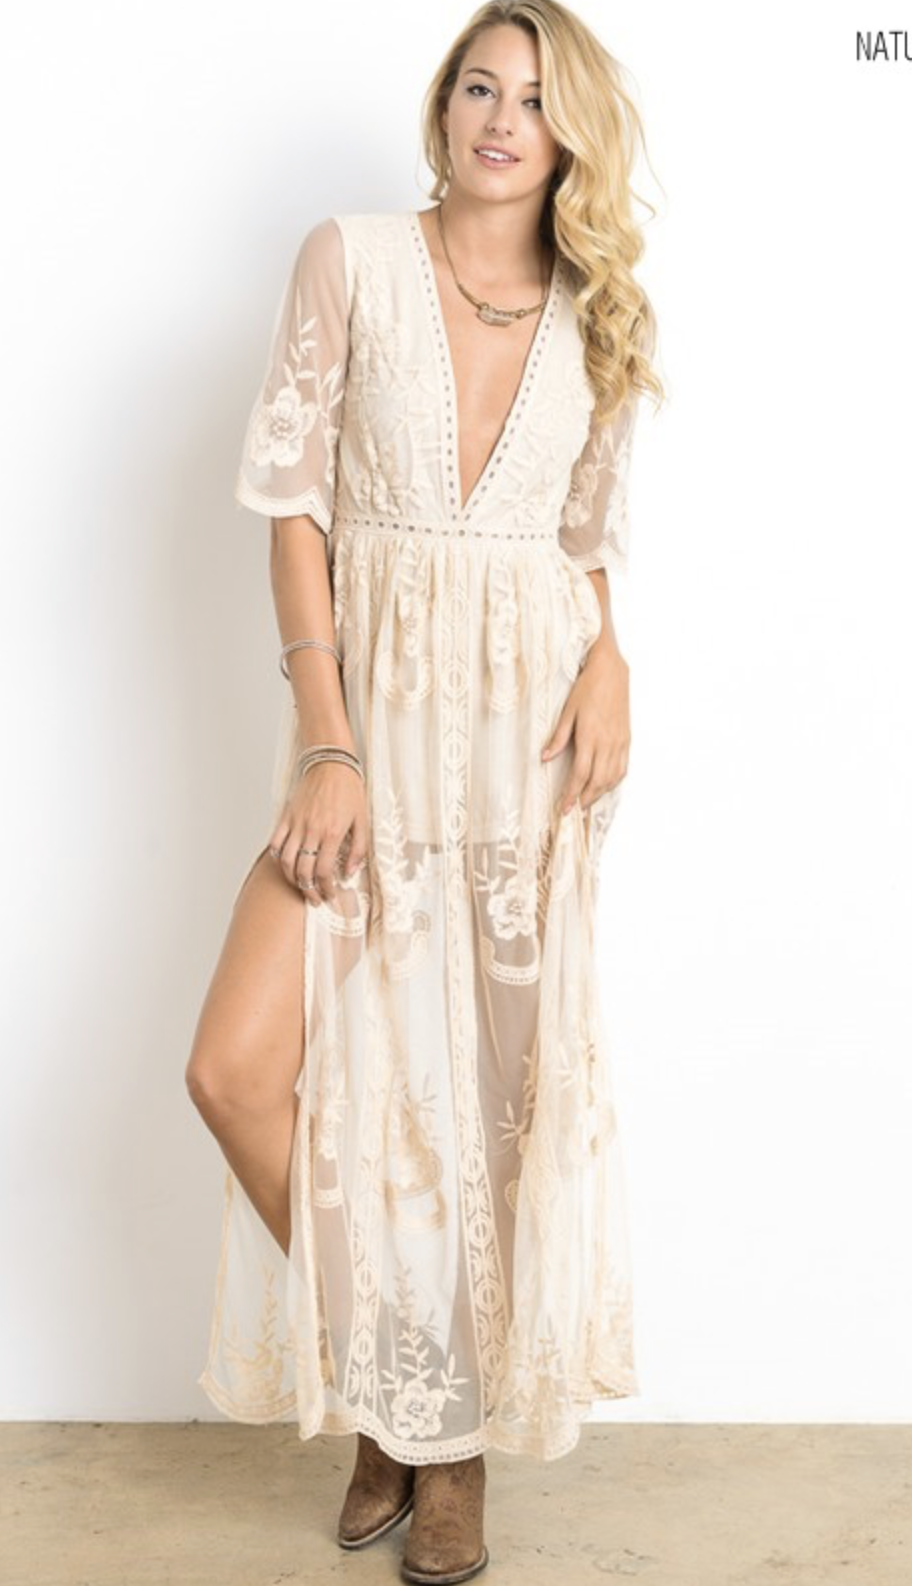 Lace maxi dress more colors in engagement picture ideas